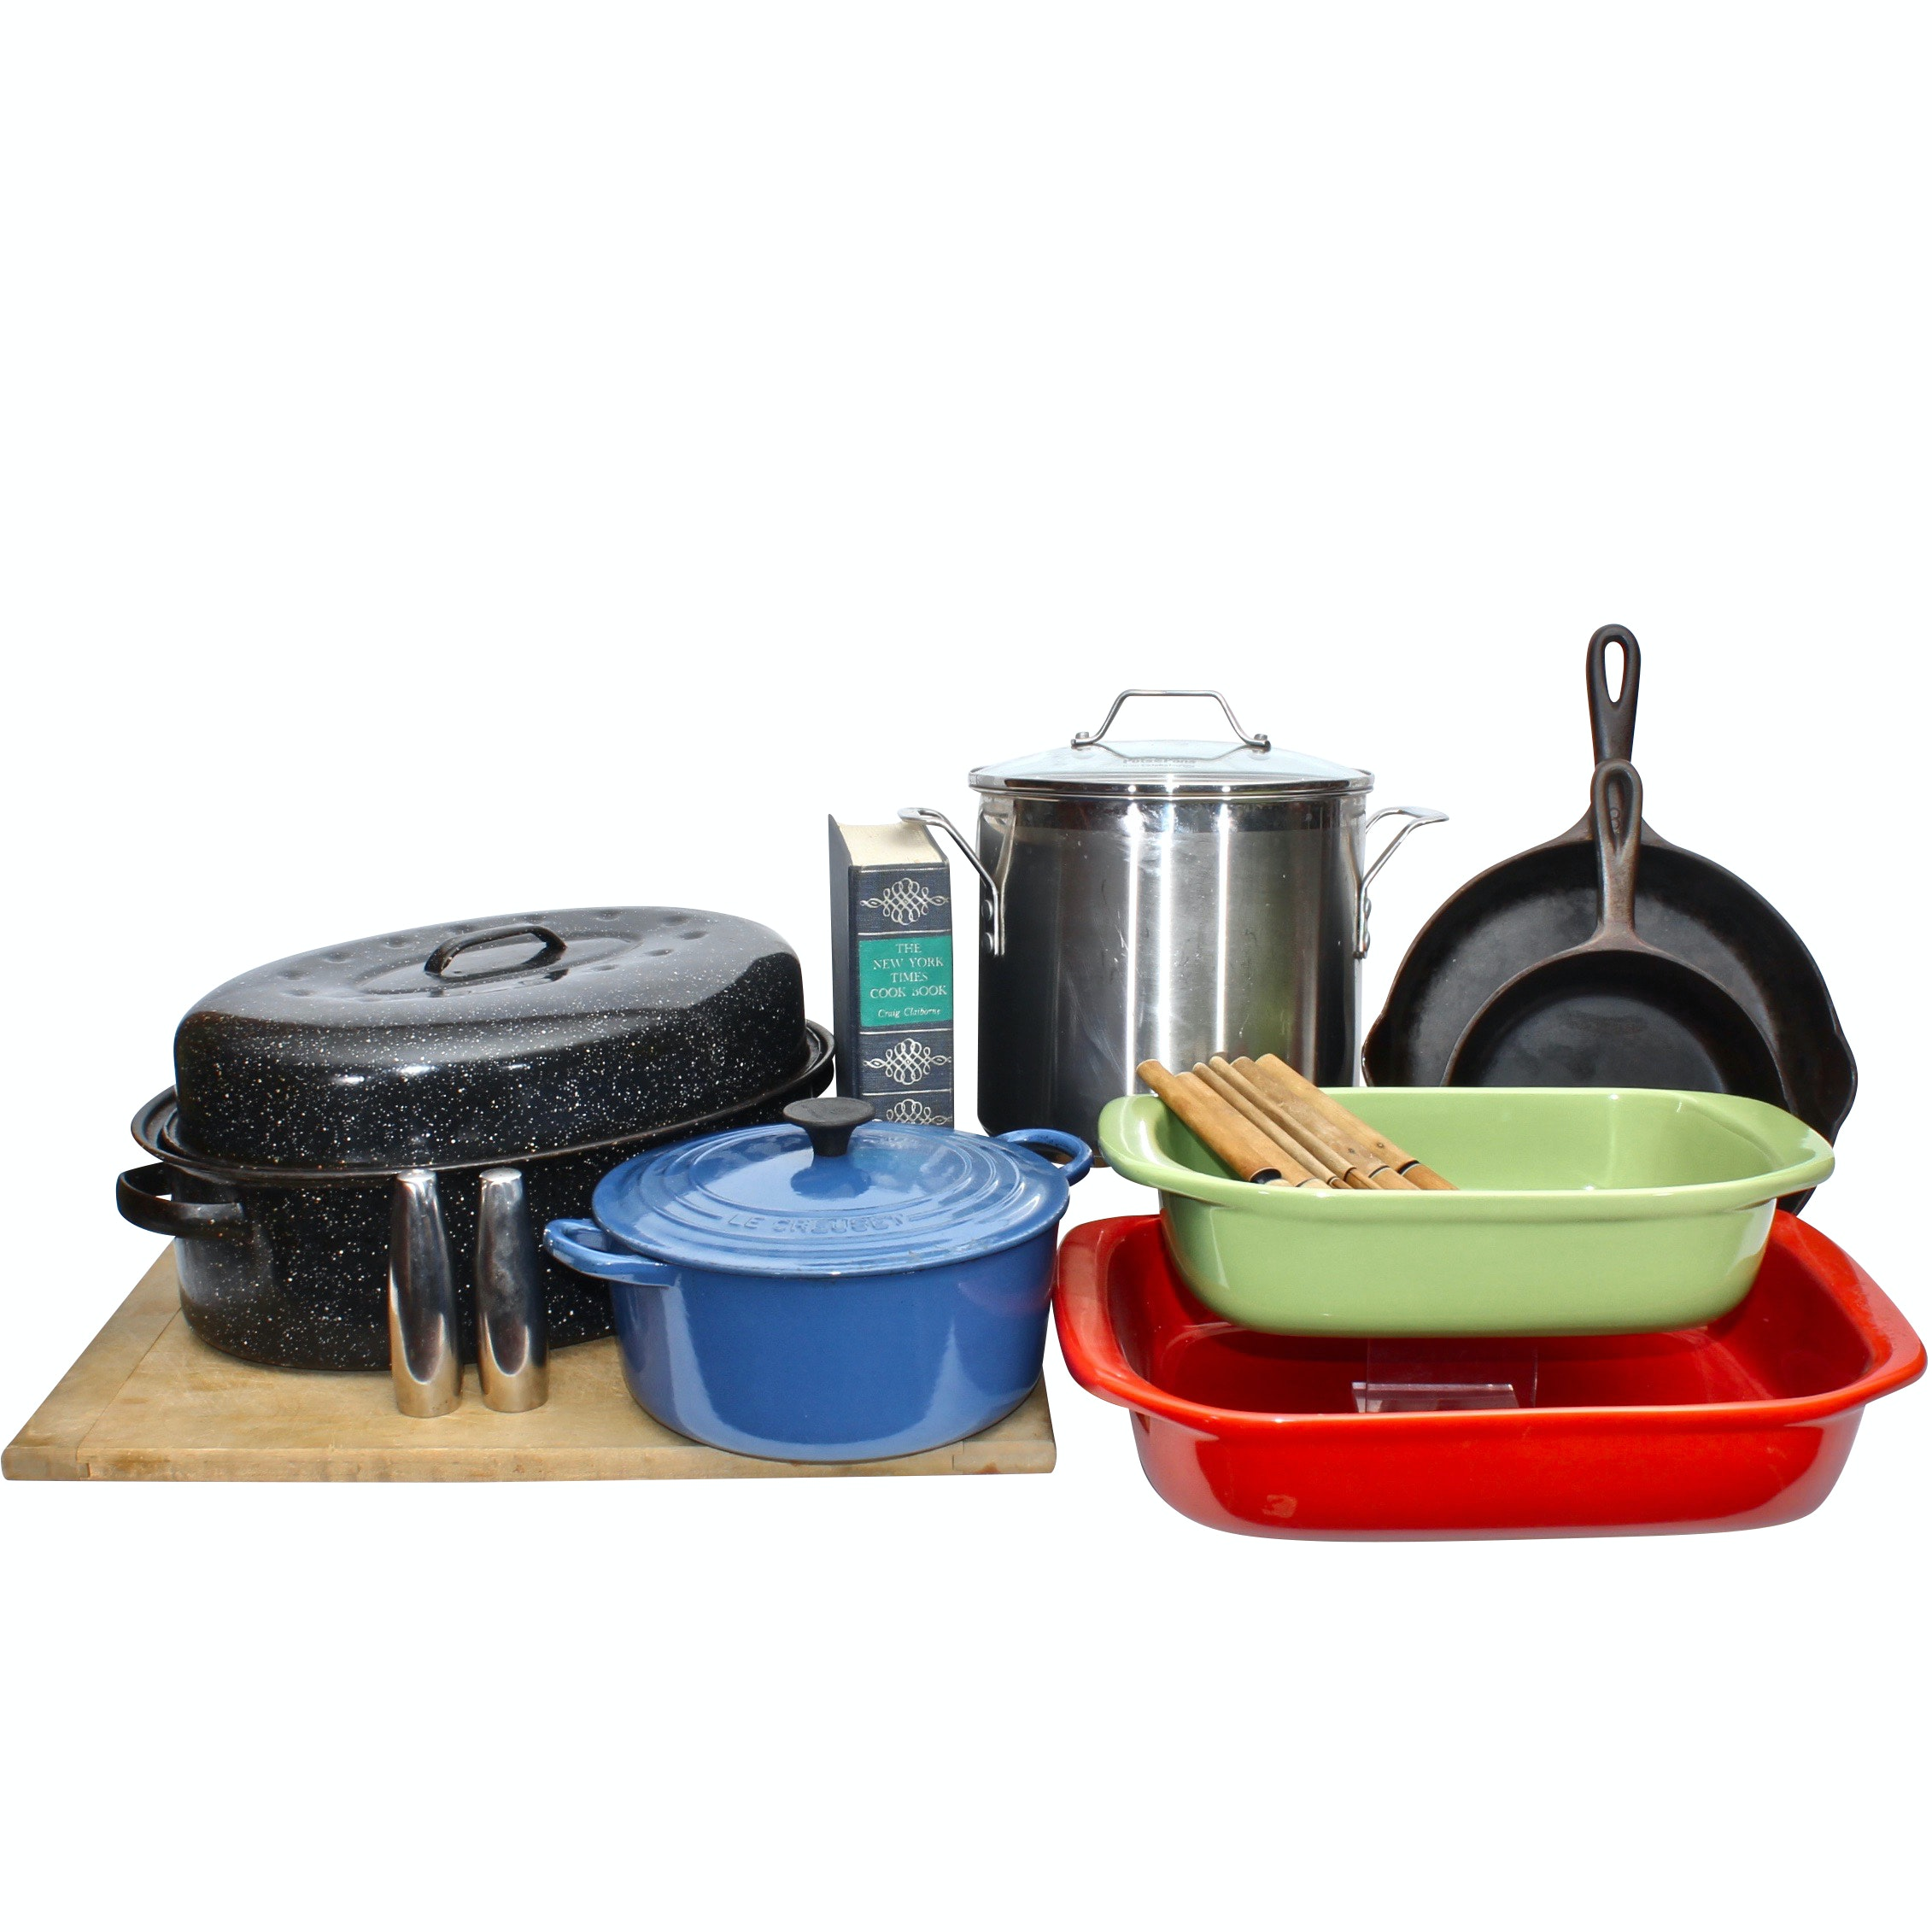 Le Cruset, Calphalon, Cast Iron and Other Gourmet Kitchenalia